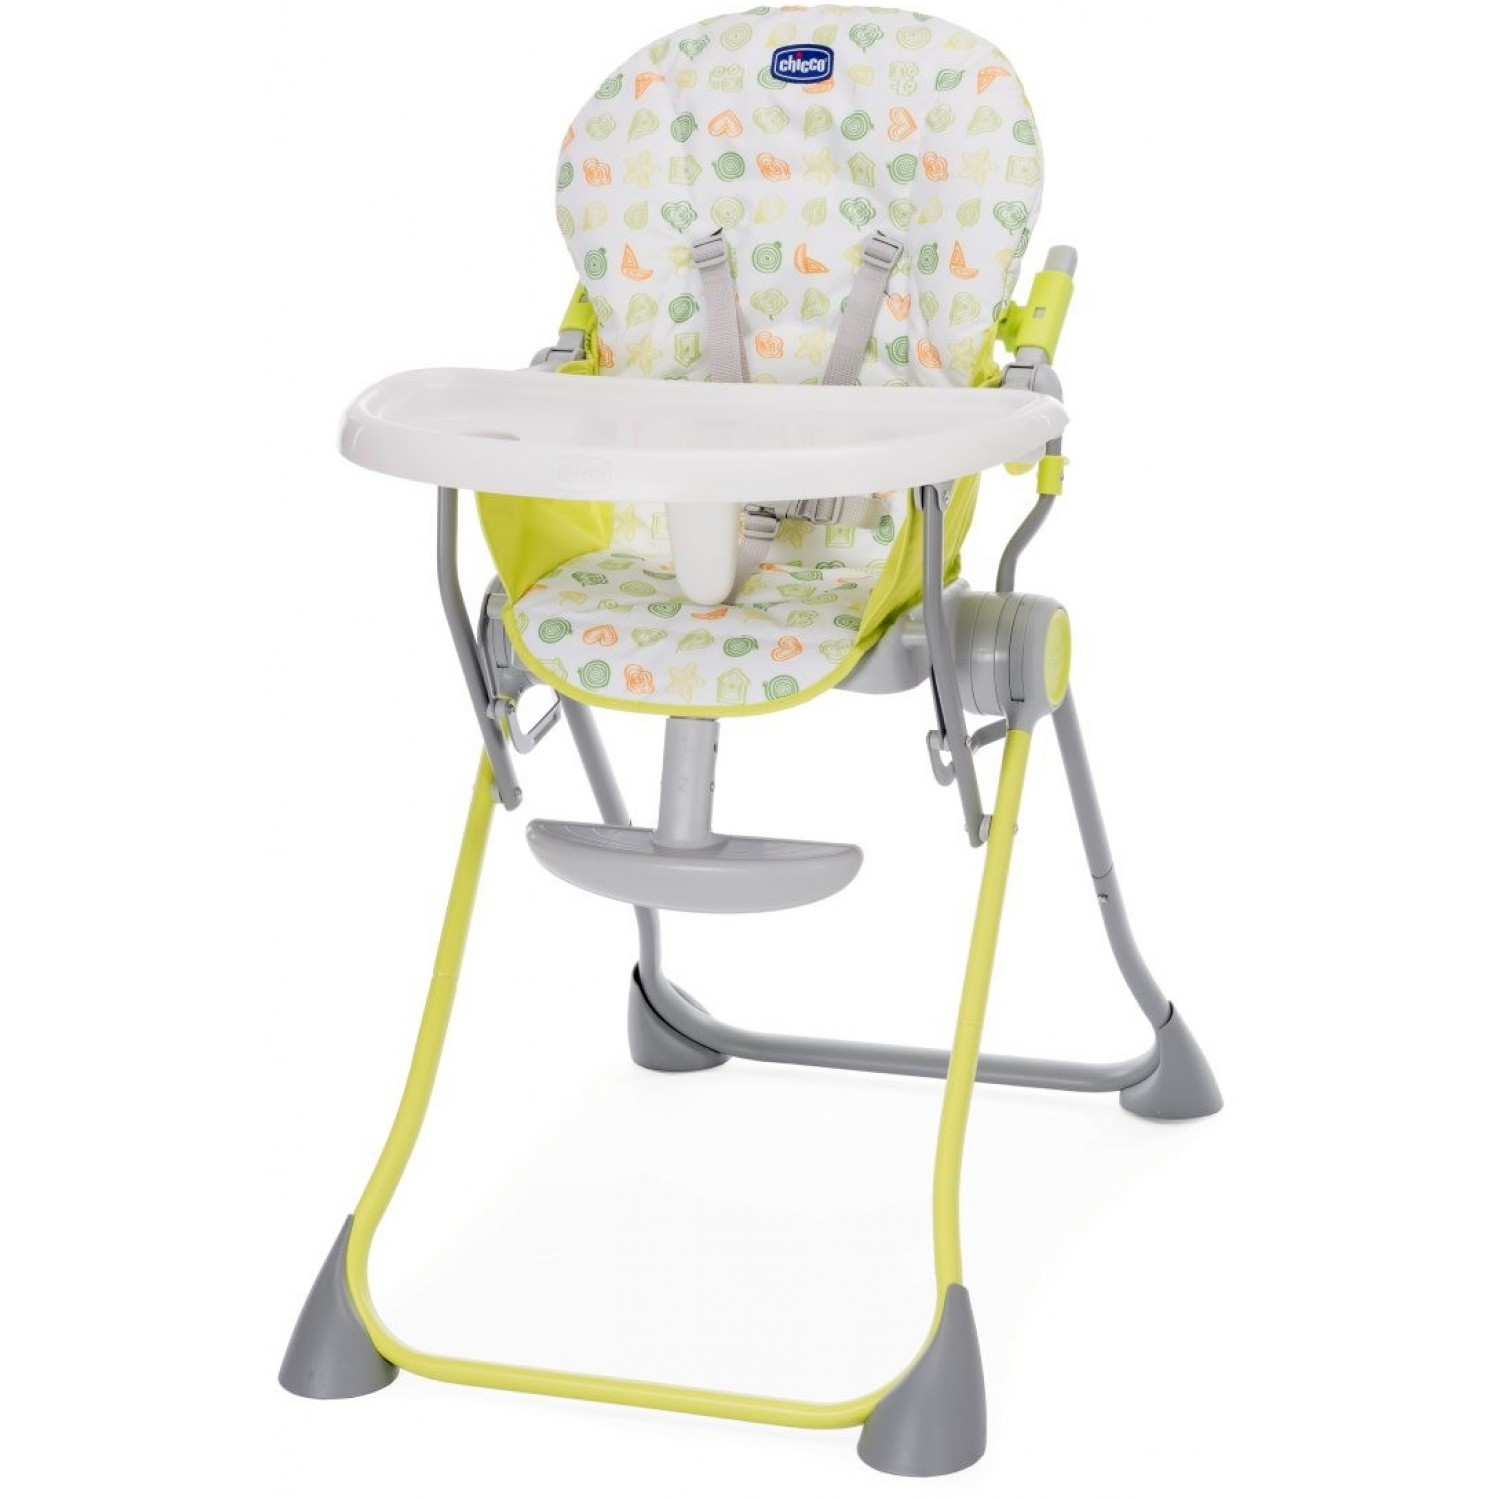 High Chair Chicco Pocket Meal Green Apple